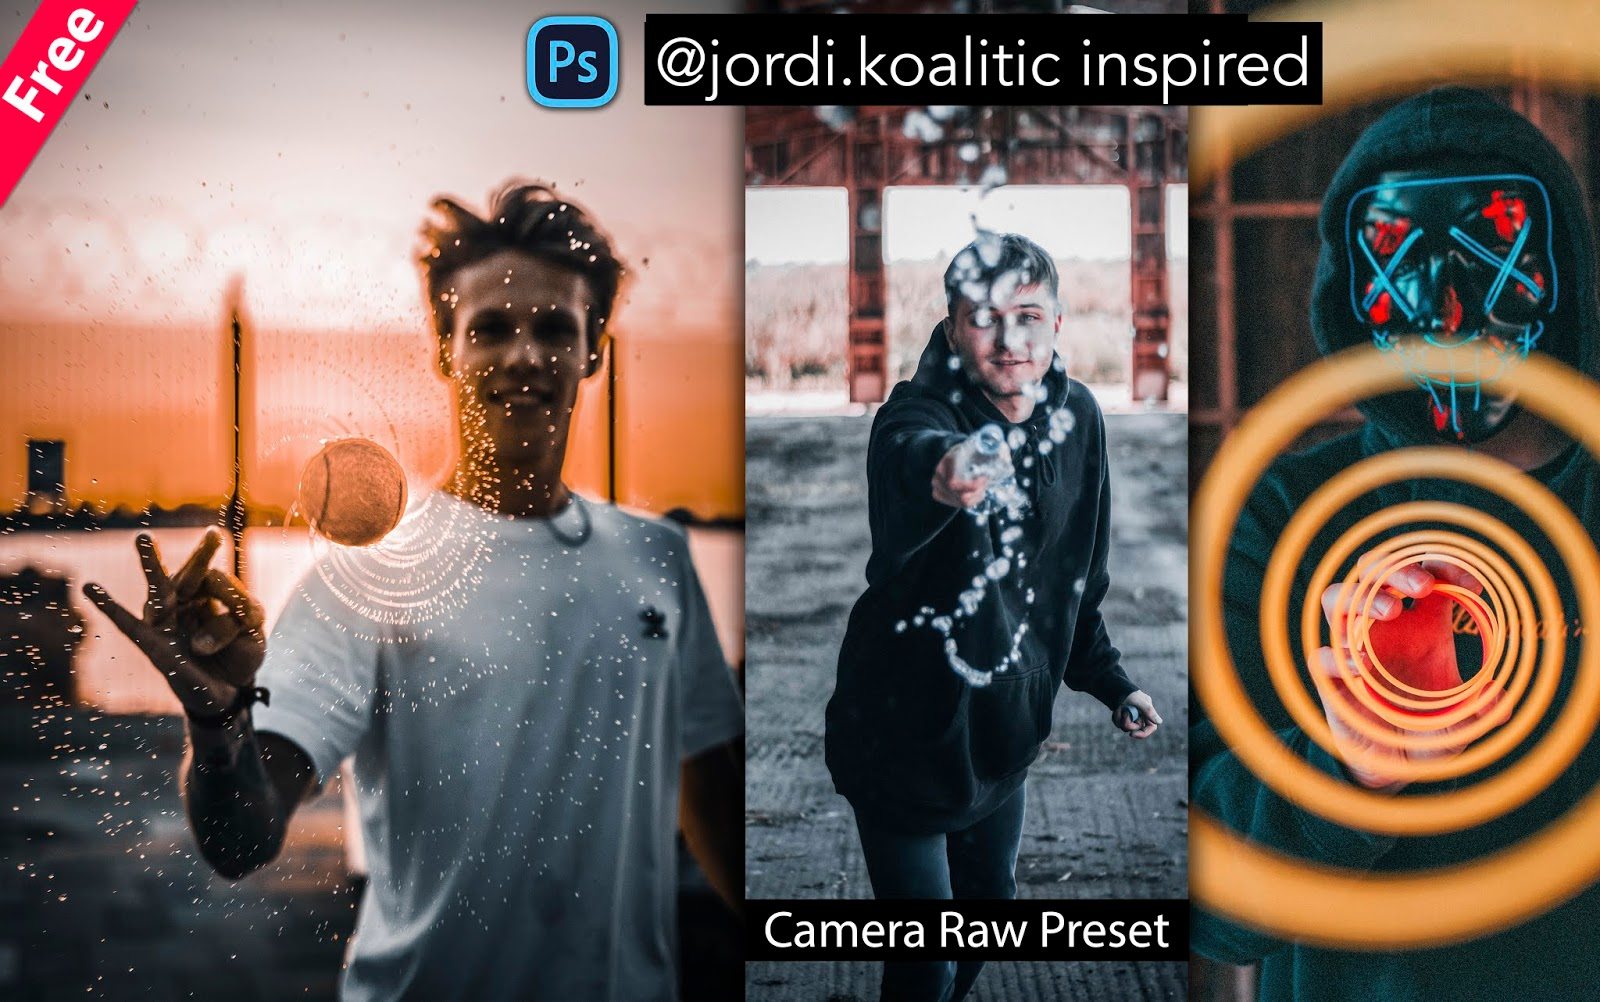 Download Jordi.Koalitic Inspired Camera Raw Presets for Free | How to Edit Photos Like @Jordi.Koalitic in Photoshop